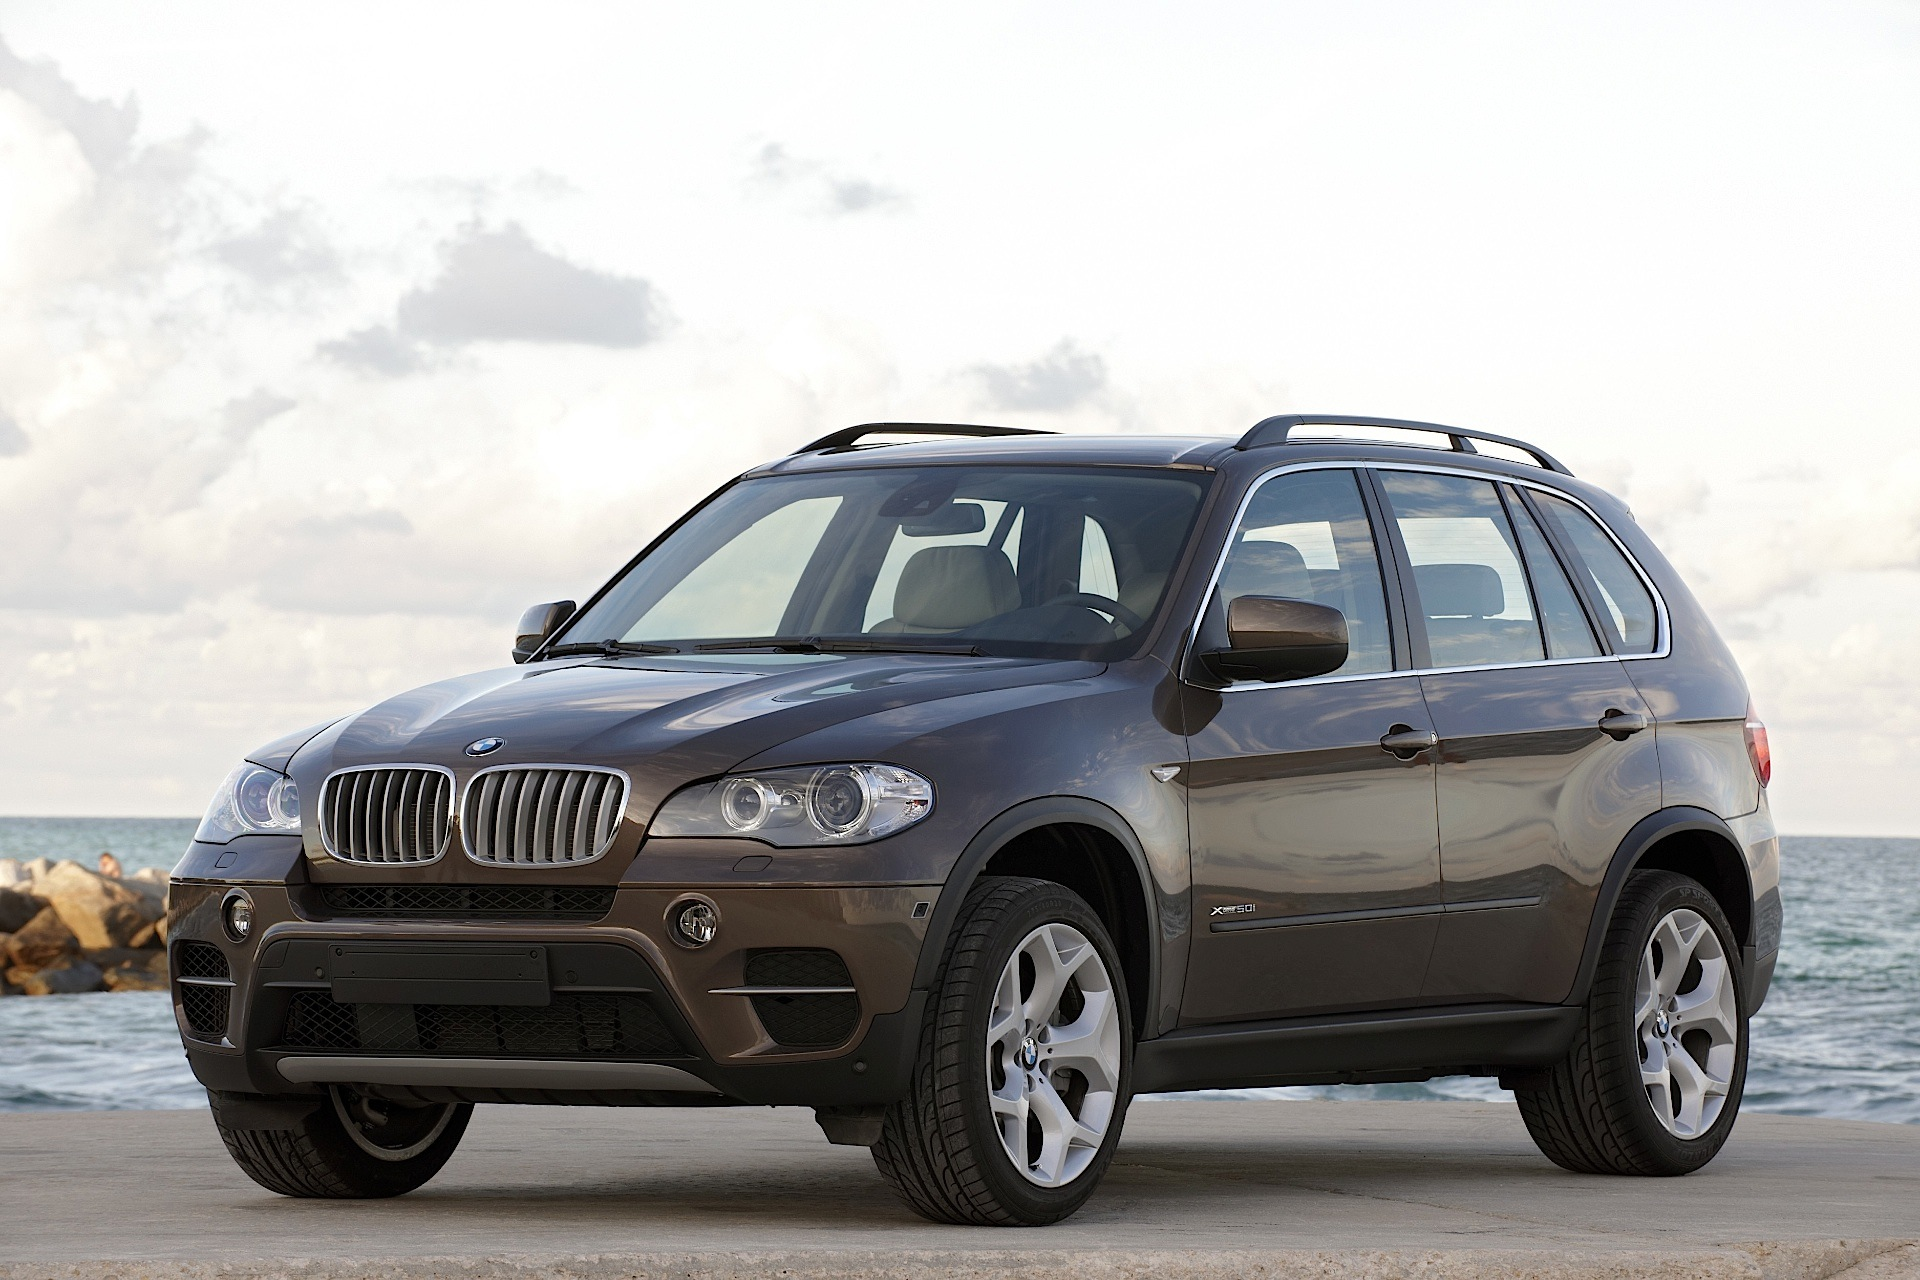 bmw x5 e70 specs photos 2010 2011 2012 2013 2014. Black Bedroom Furniture Sets. Home Design Ideas